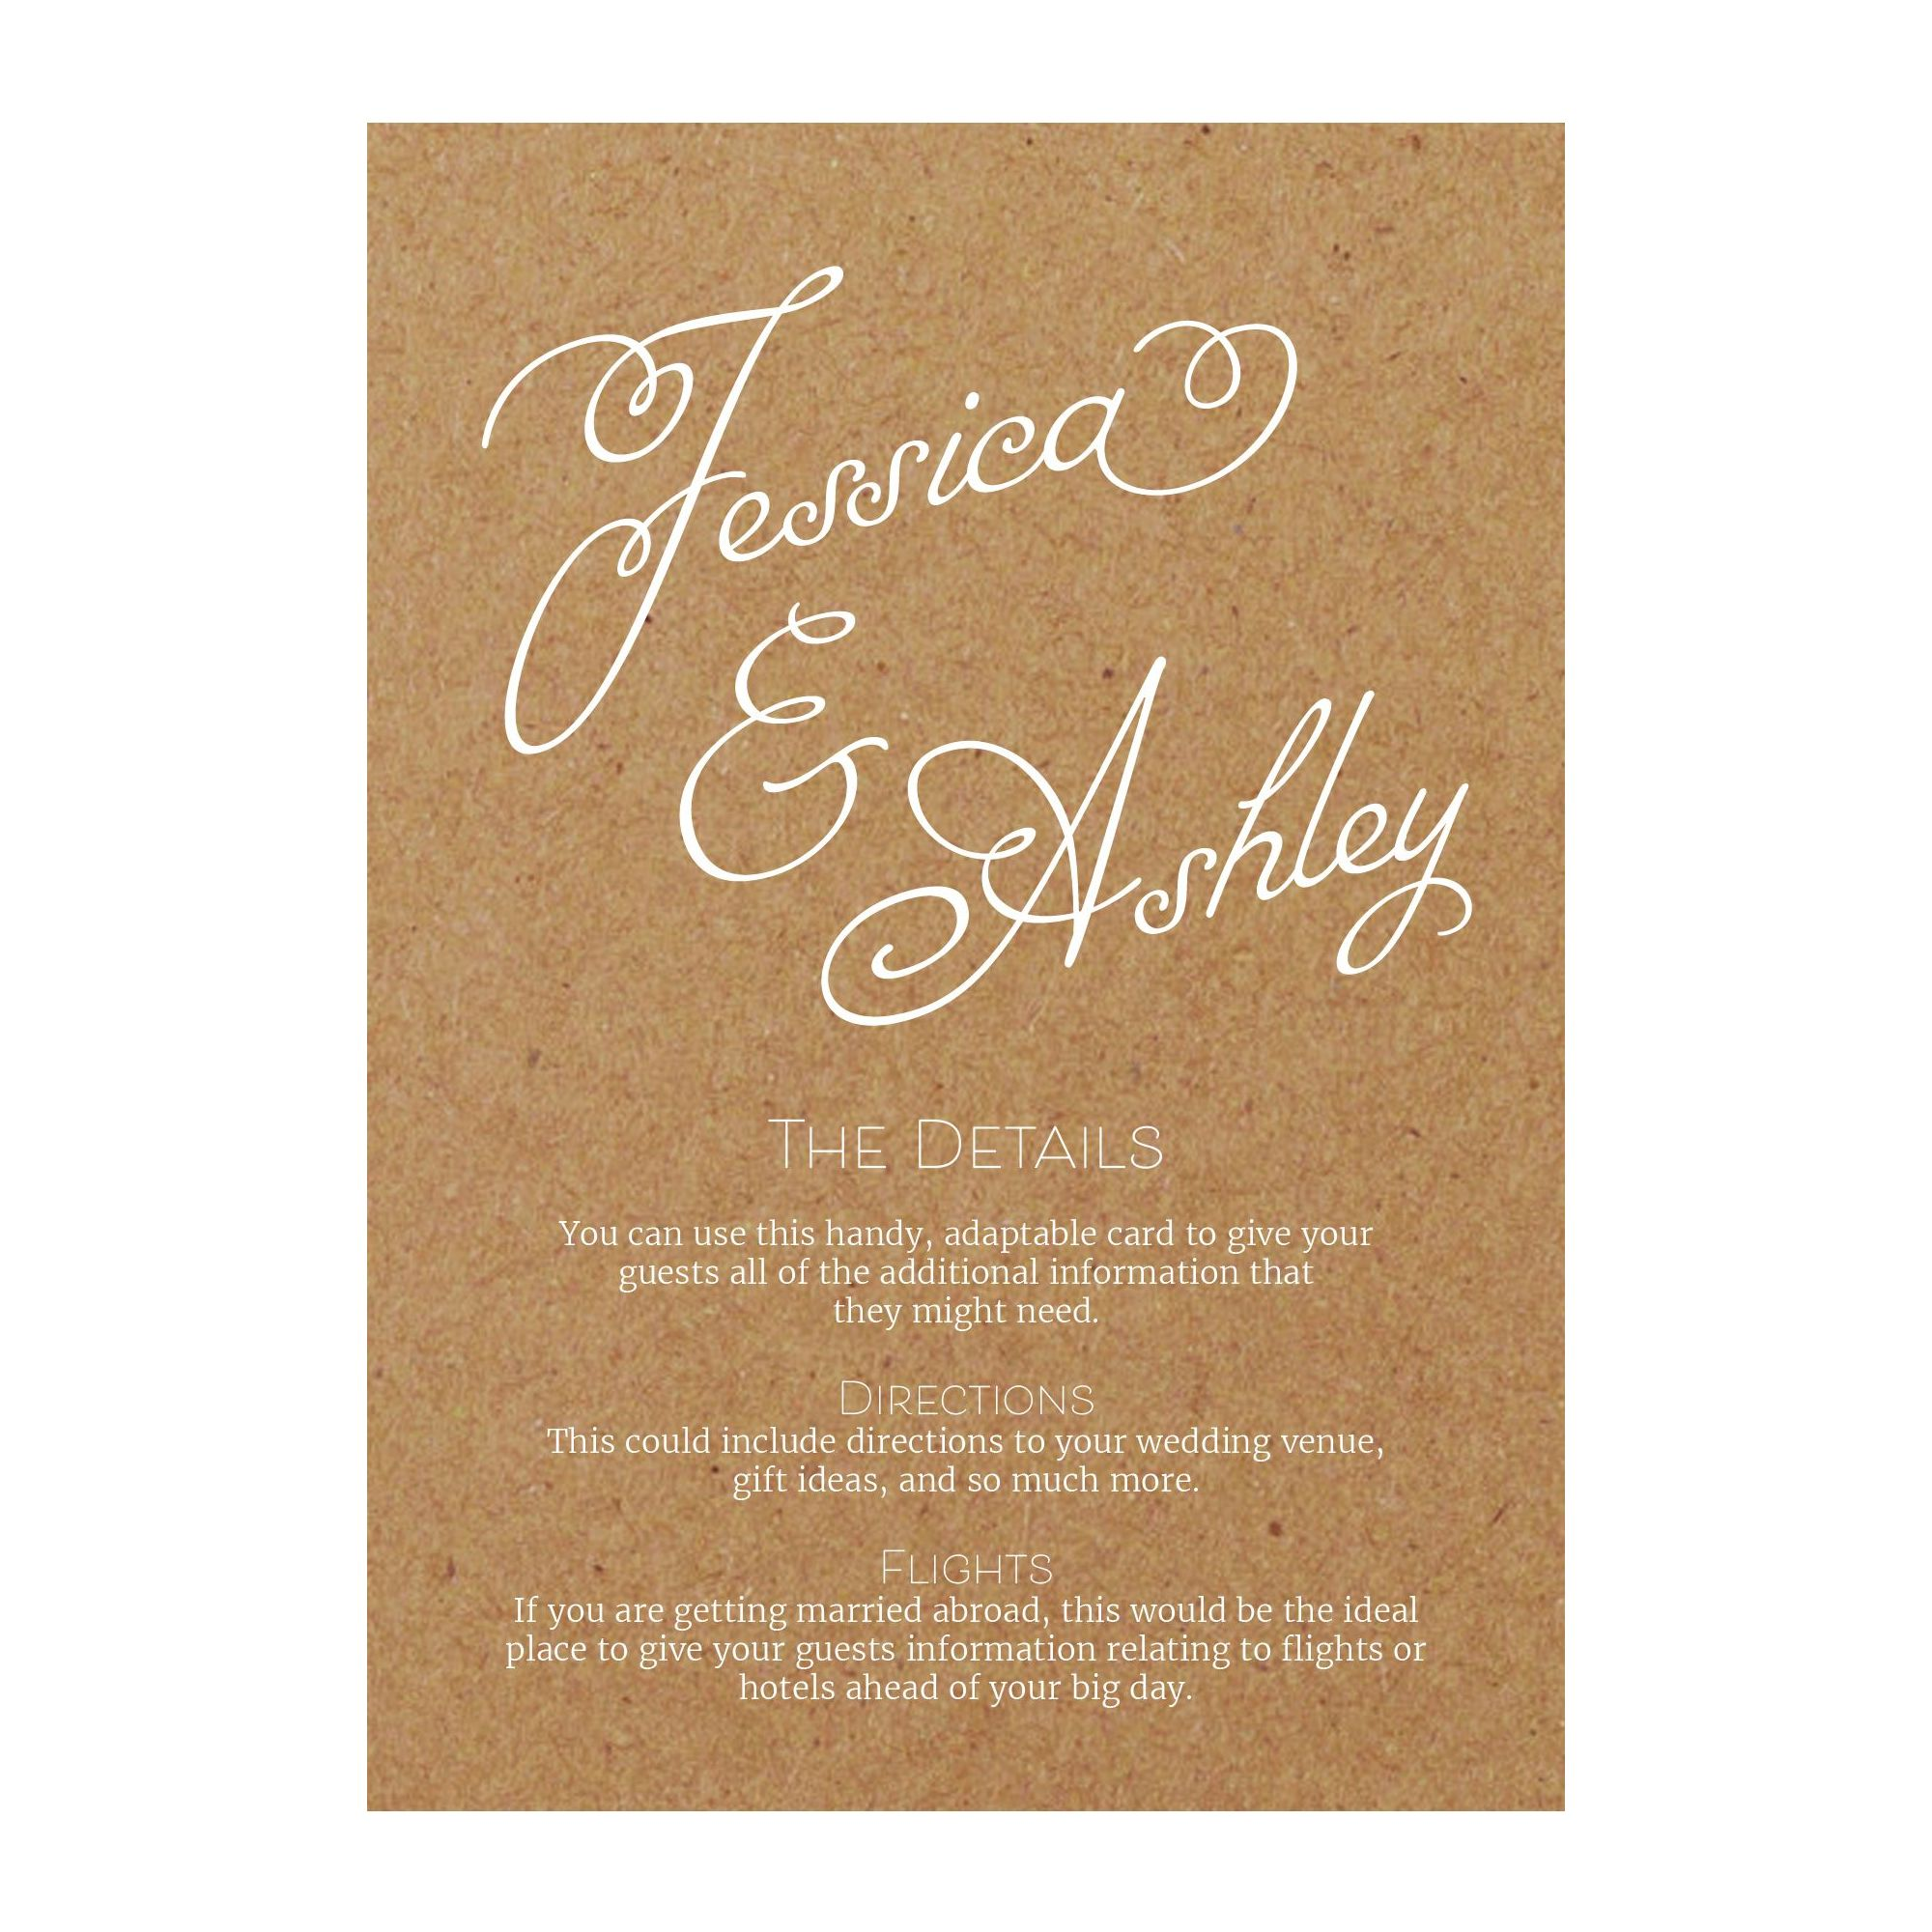 Recycled Brown Kraft with White Ink Classic Swirled Name Guest Information Cards